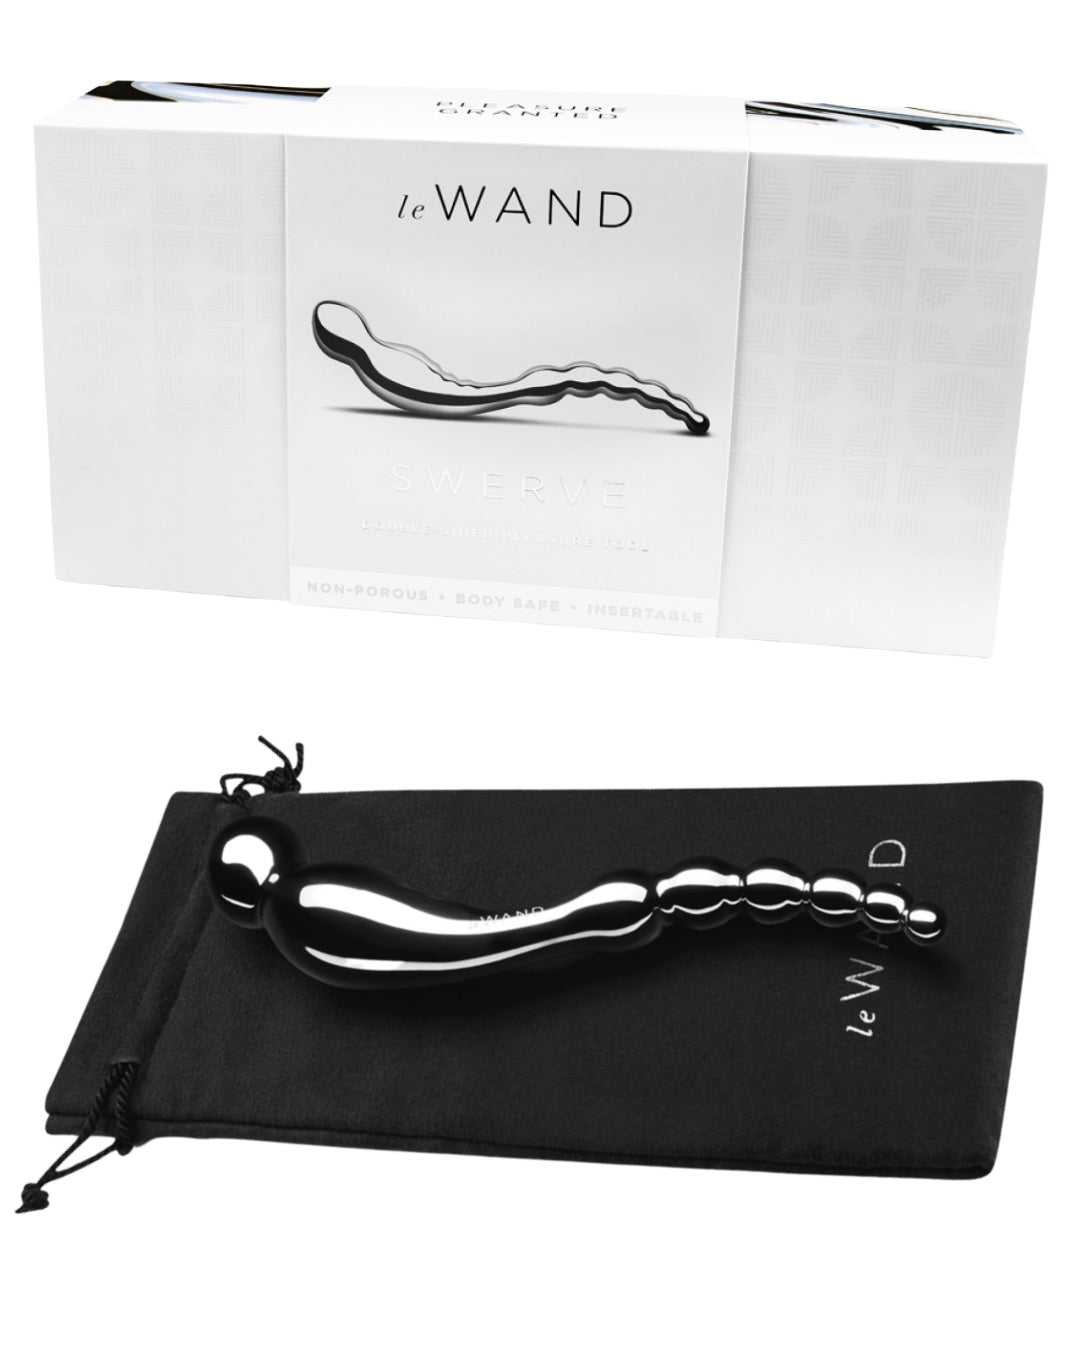 Le Wand Swerve Double Ended Stainless Steel Dildo